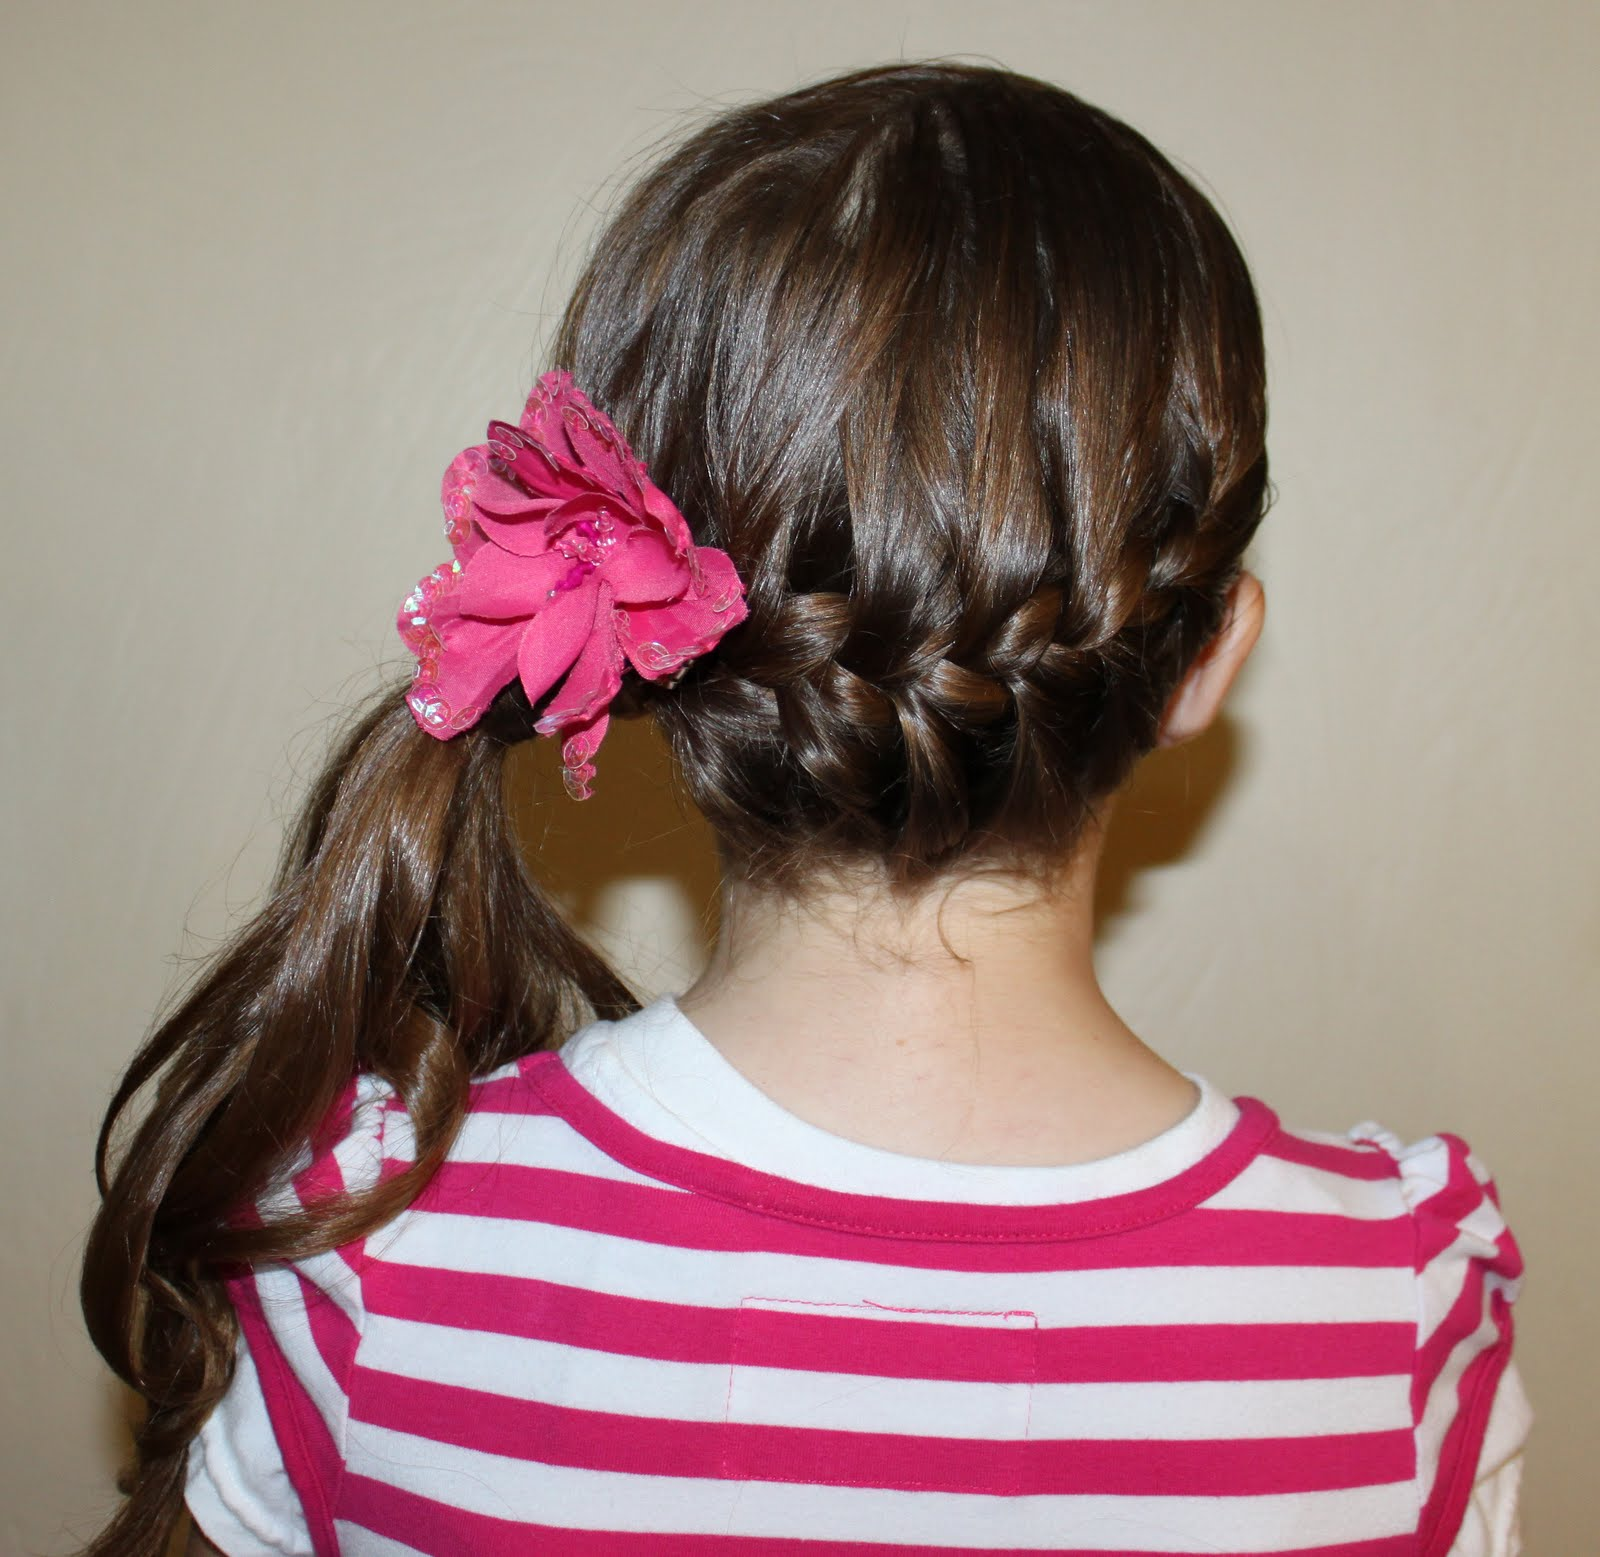 Hairstyles for Girls.. The Wright Hair: Low French Braid ...